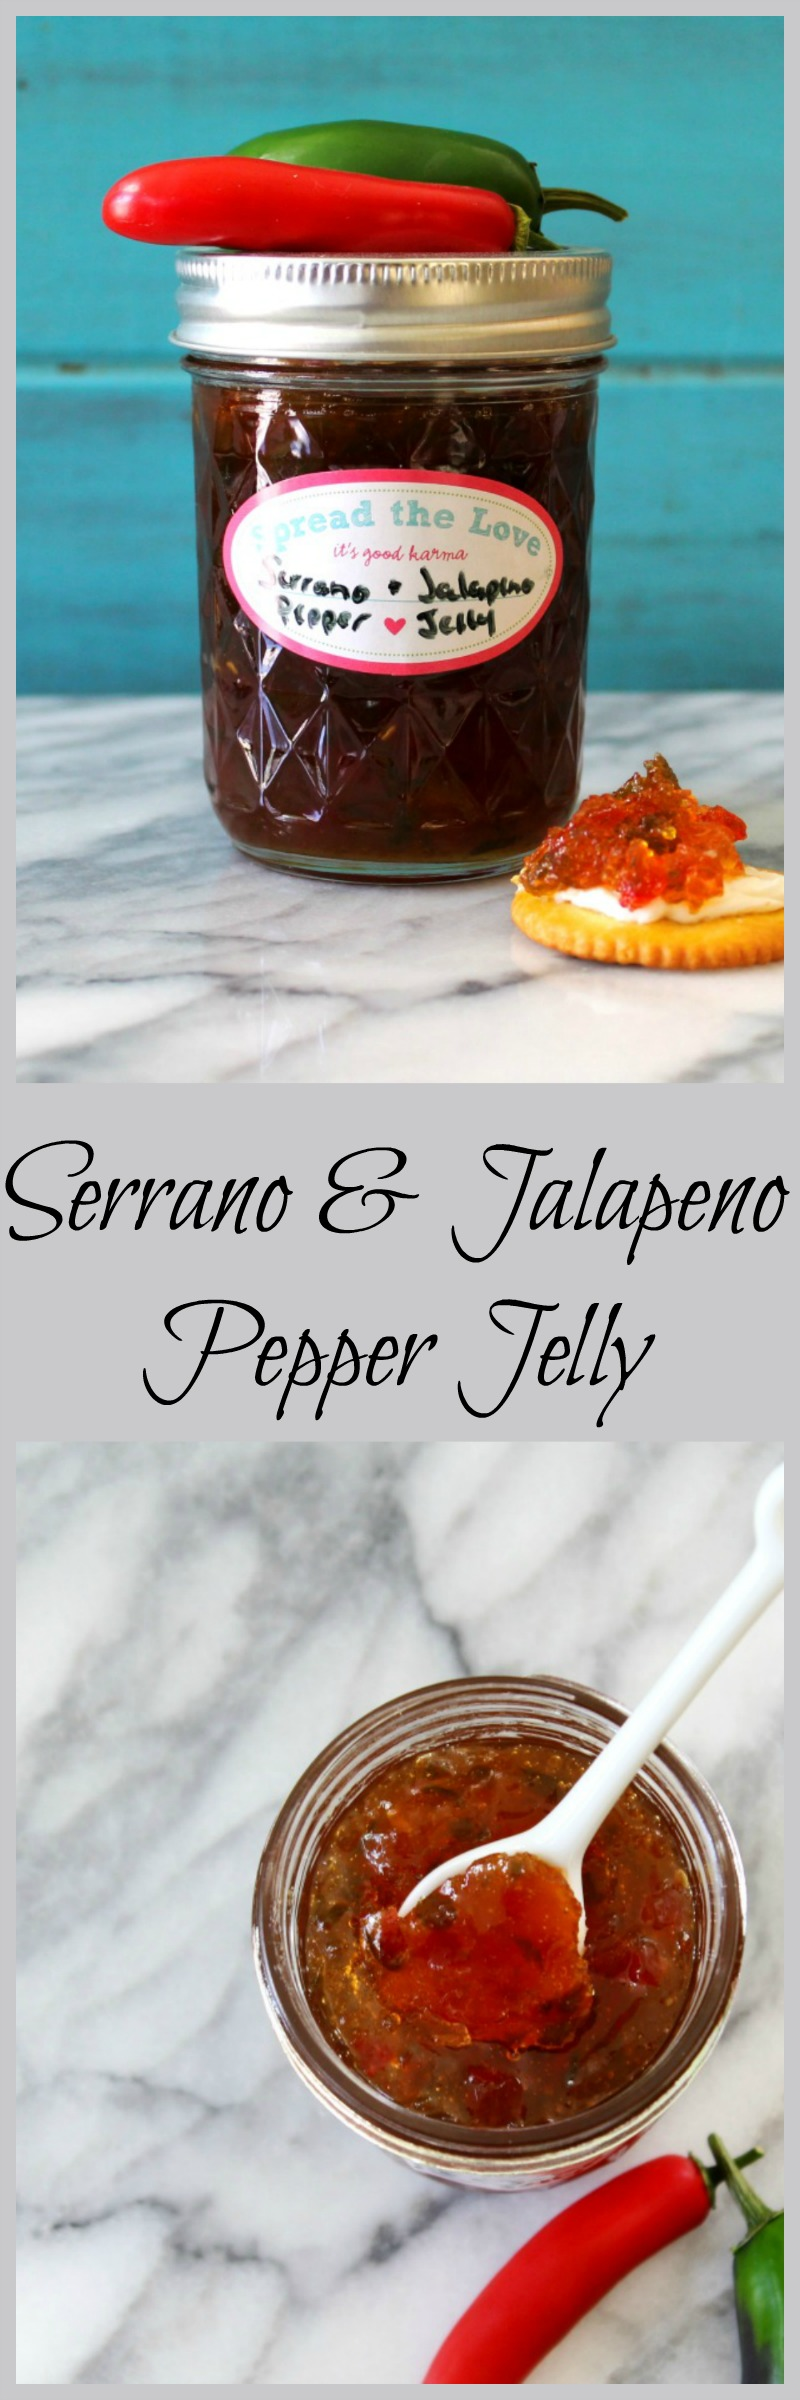 Serrano & Jalapeno Pepper Jelly